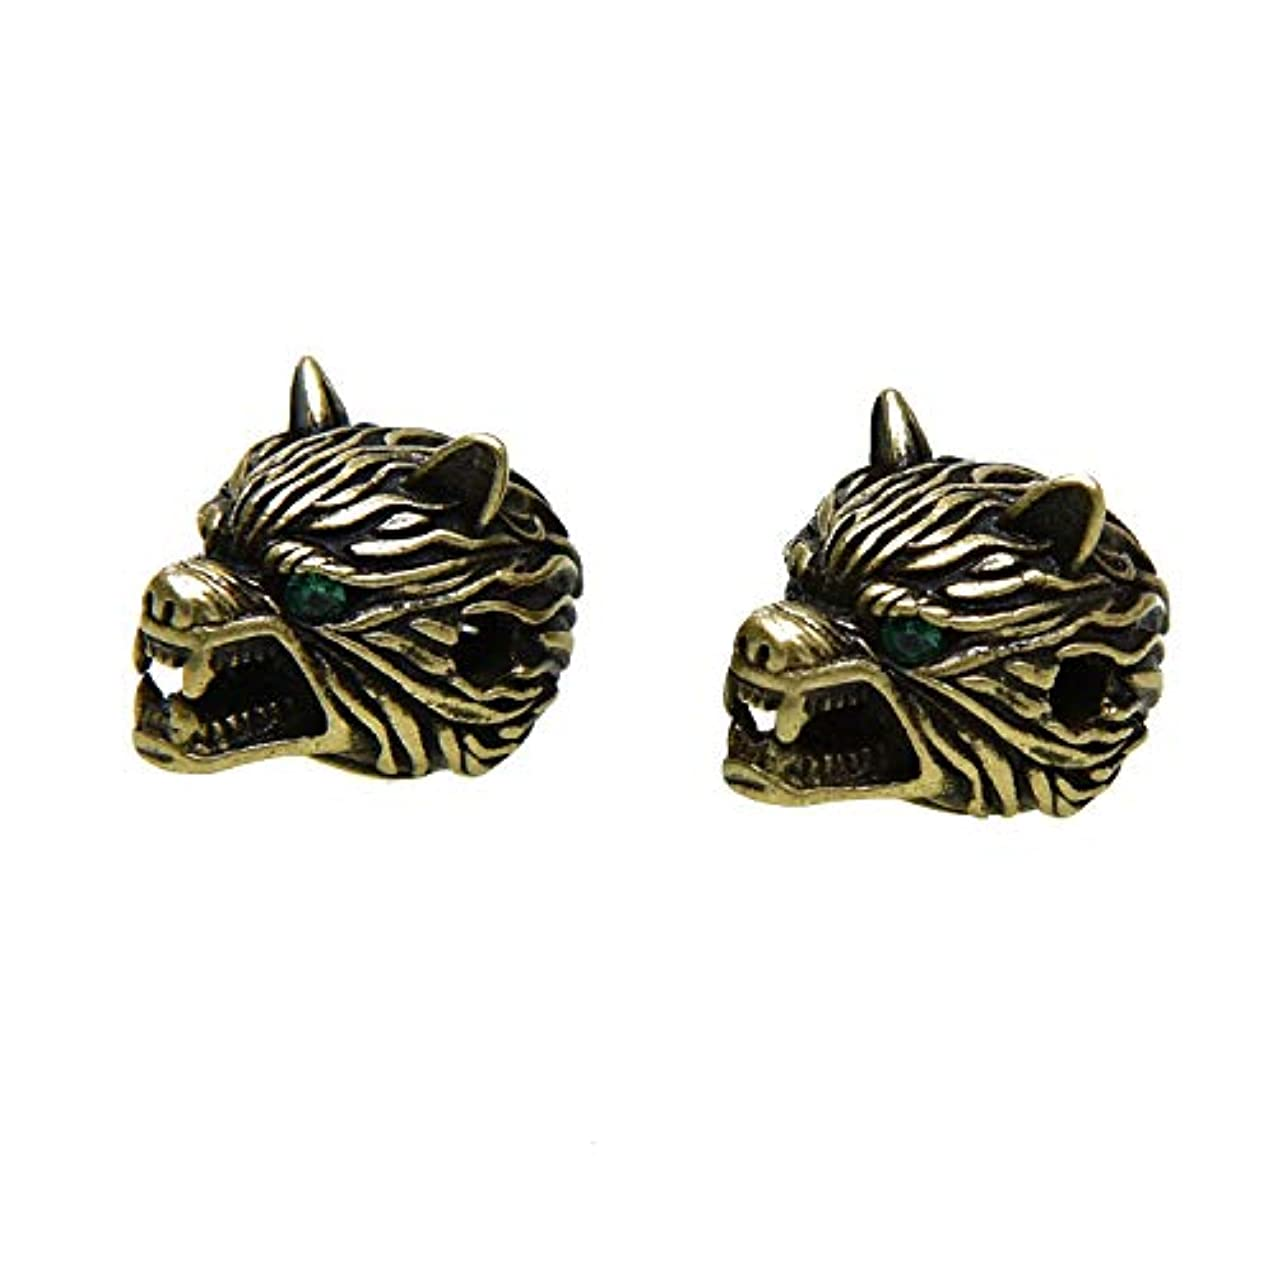 Monrocco 2pcs Antique Bronze Wolf Head Bracelet Charms Spacer Beads DIY Jewelry Findings for Jewelry Making Crafts